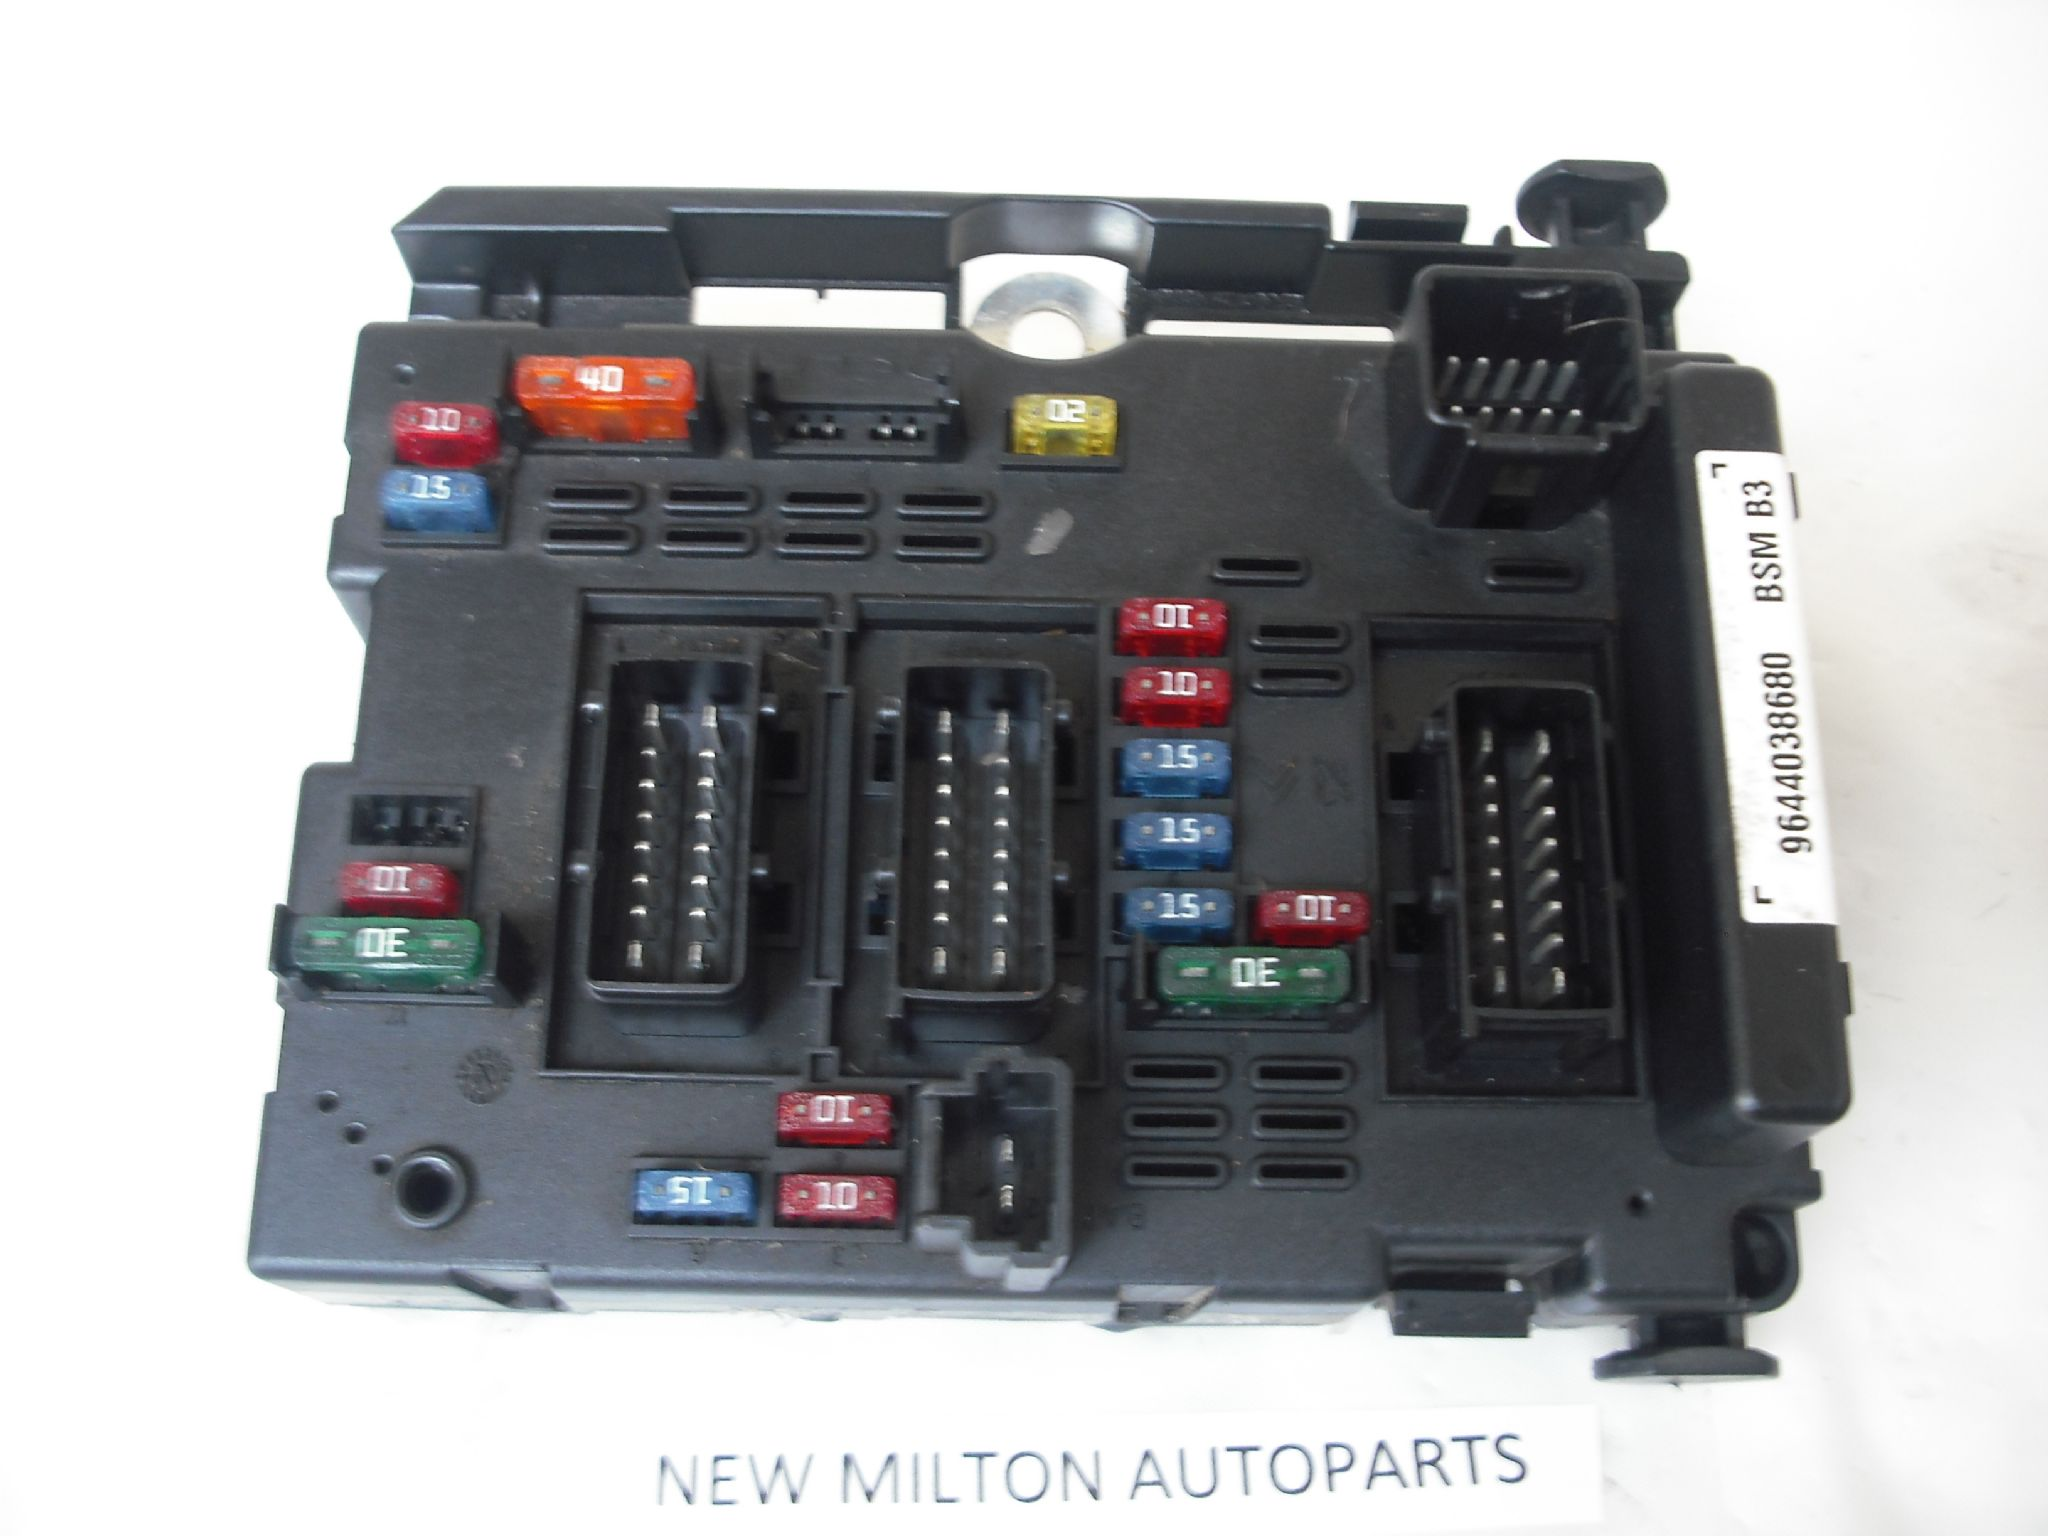 peugeot 307 partner citroen berlingo fuse box controller 9644038680 bsm b3 ........................sorry out of stock 5843 p peugeot 307 partner citroen berlingo fuse box controller citroen berlingo 2003 fuse box at panicattacktreatment.co